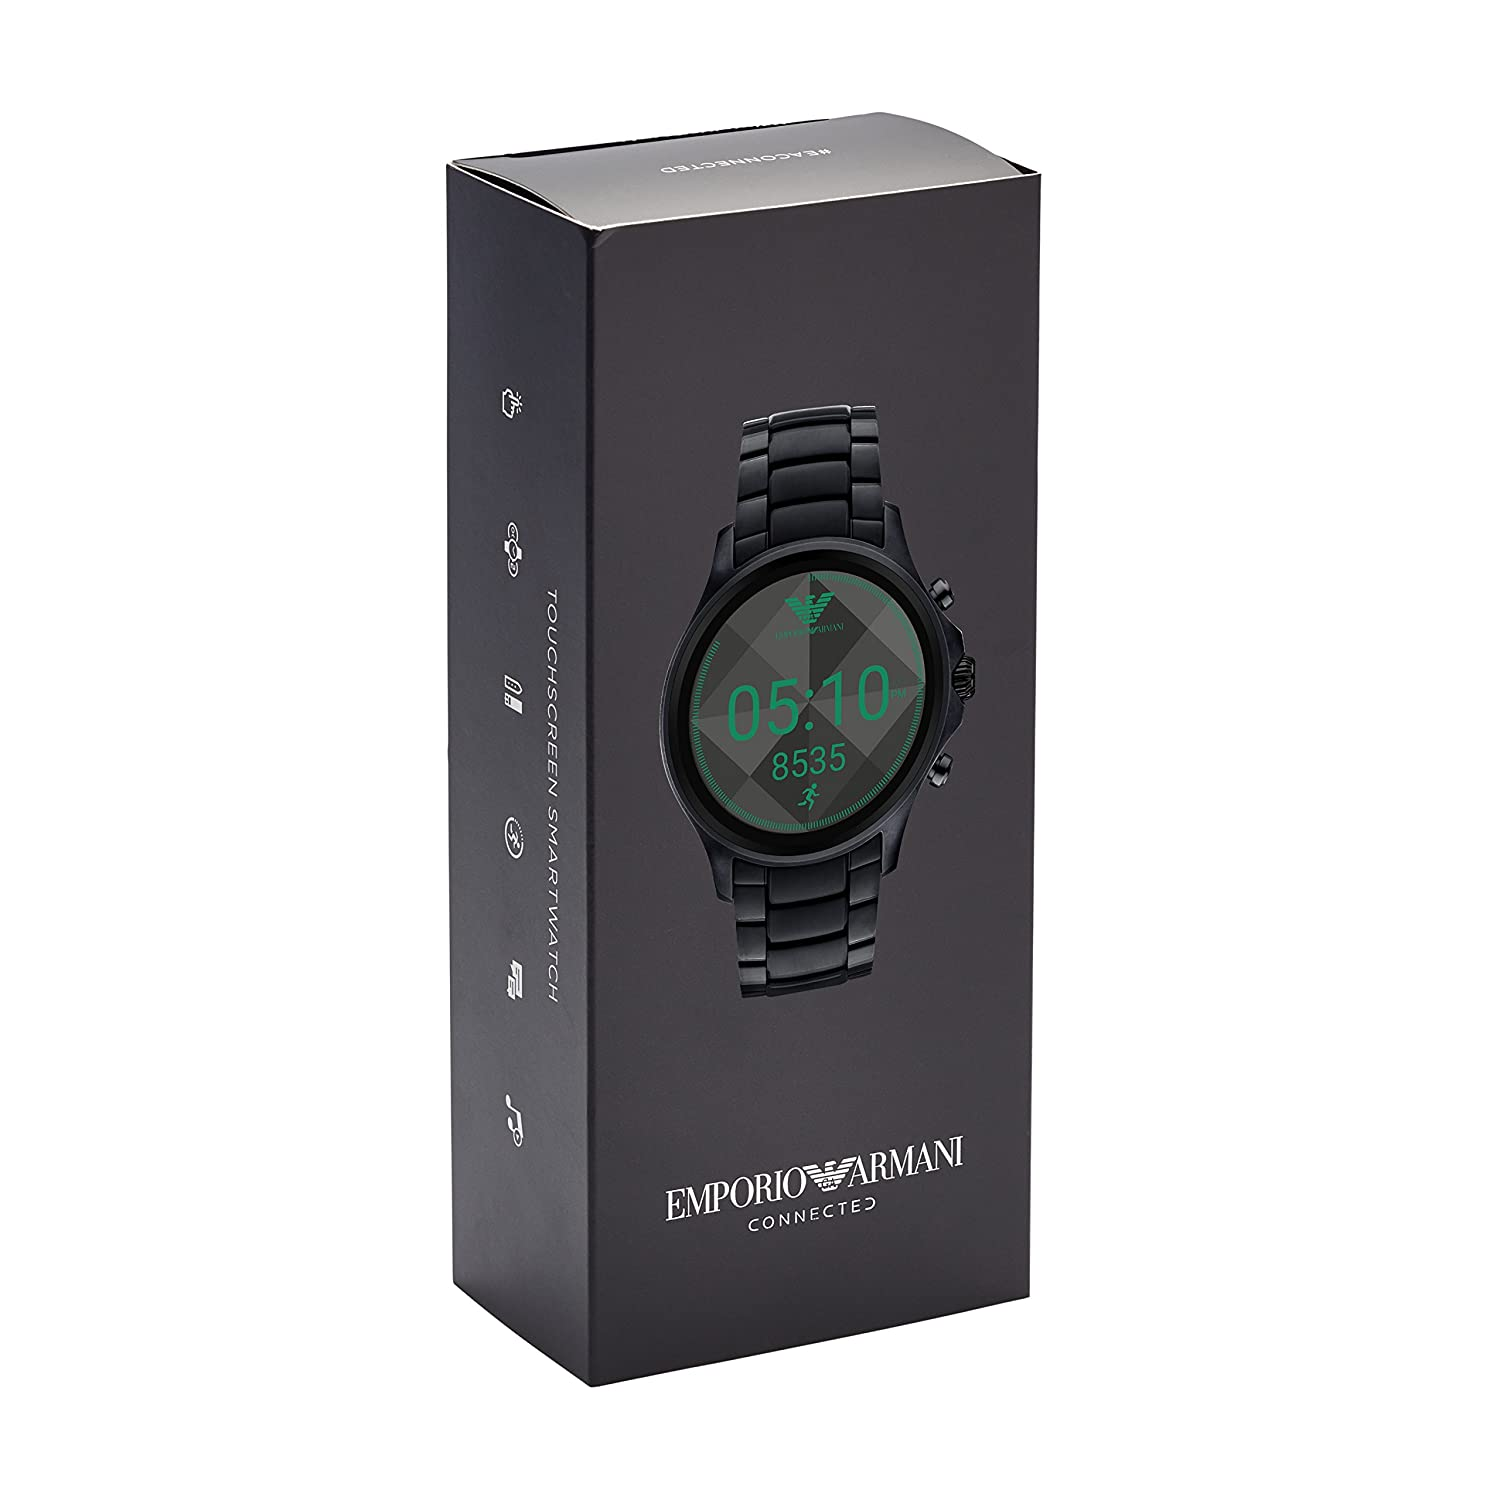 45e87f2cfa5 Buy Emporio Armani Display Watch Digital Black Dial Men s Watch - ART5002  Online at Low Prices in India - Amazon.in